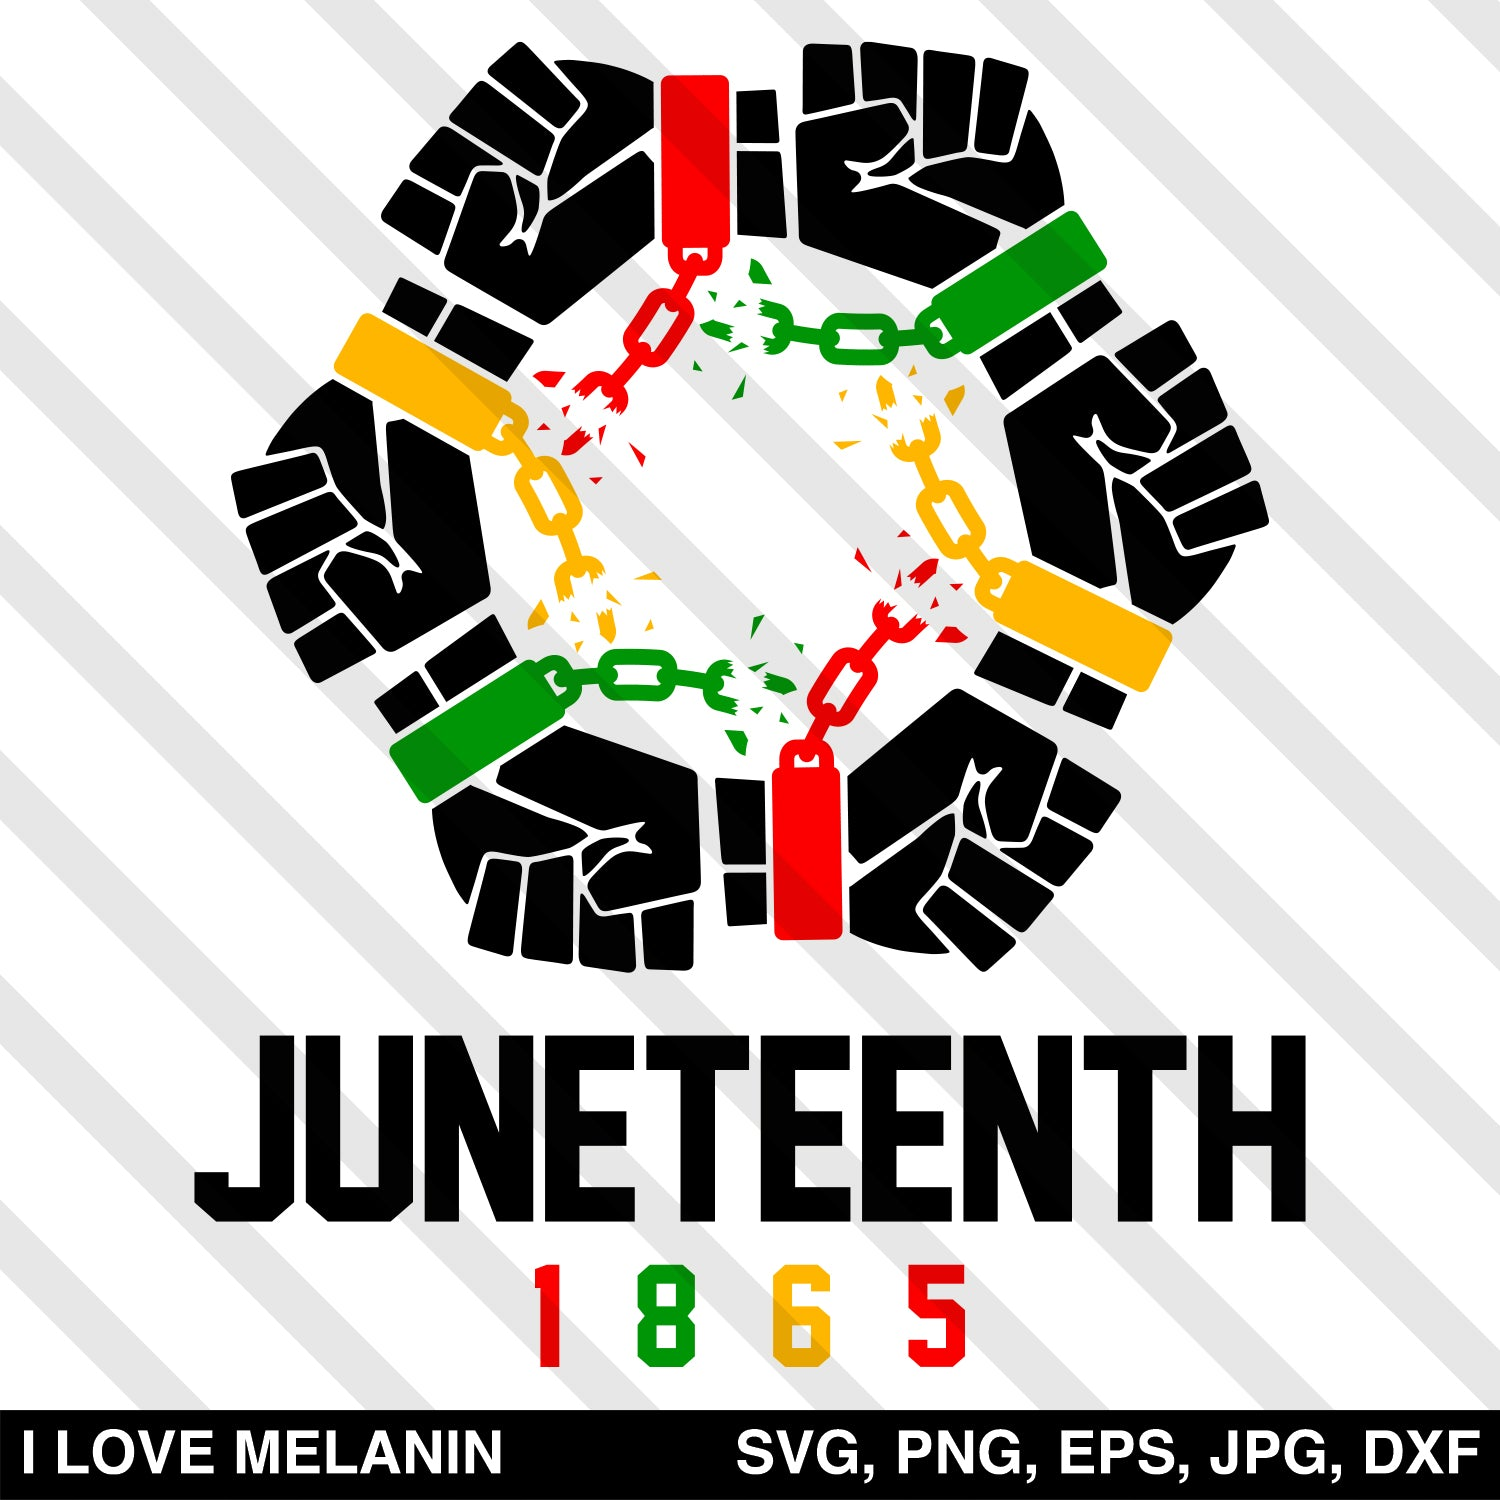 Juneteenth United Freedom Fists 1865 SVG